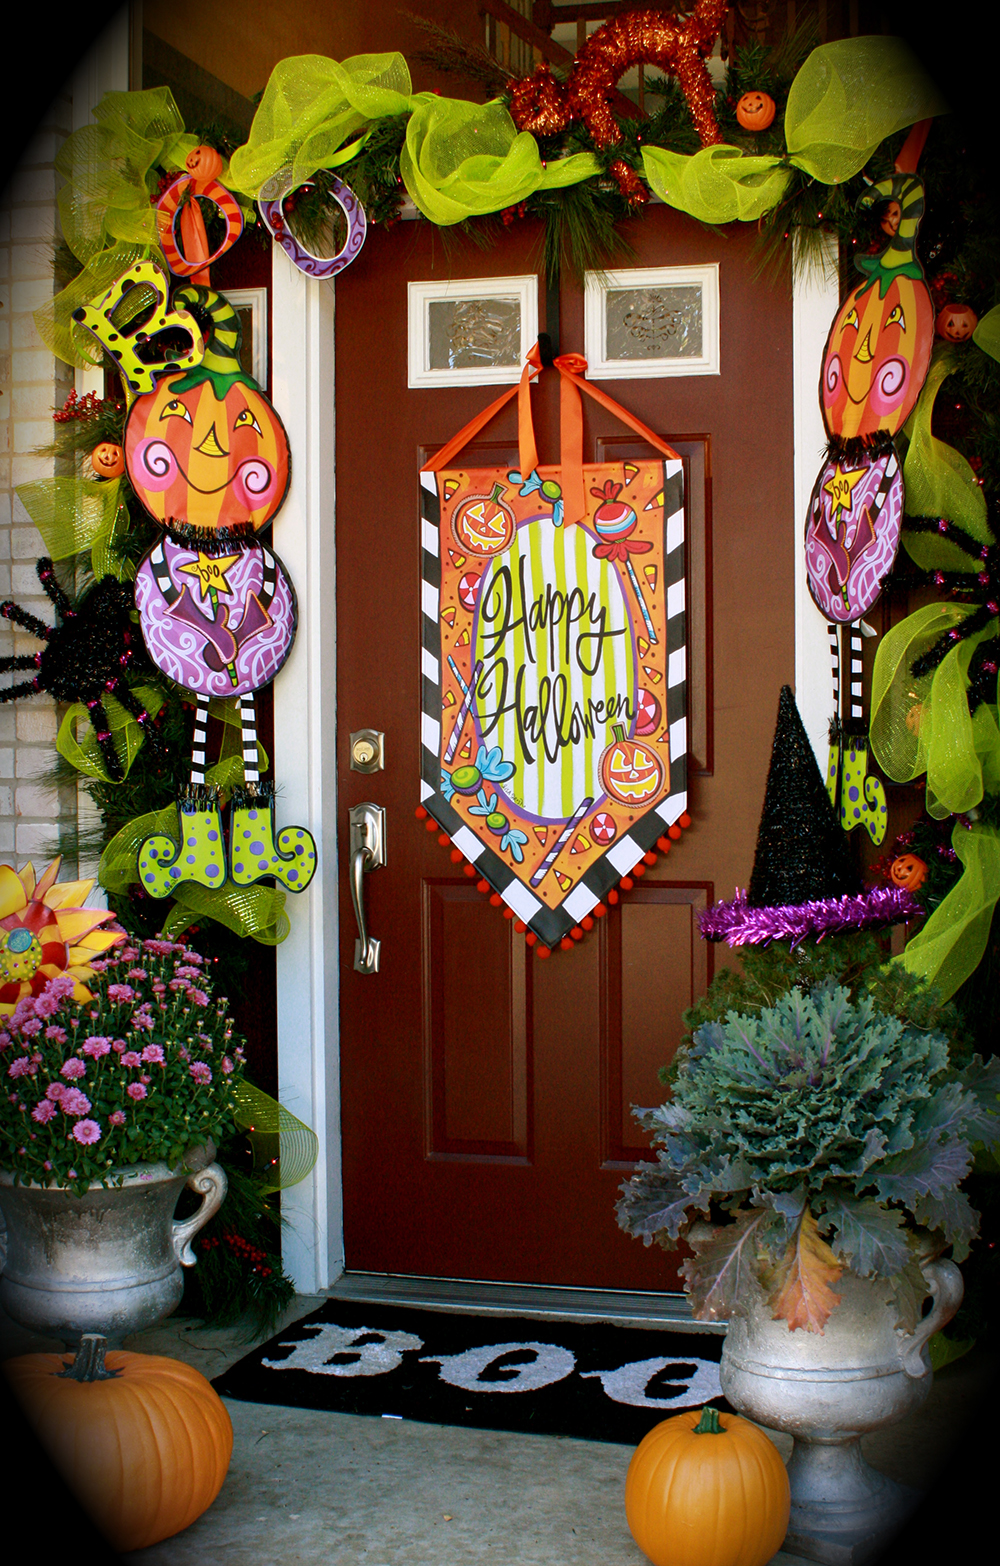 Cute halloween door decorations - Front Portch Trost Halloween Door Decoration